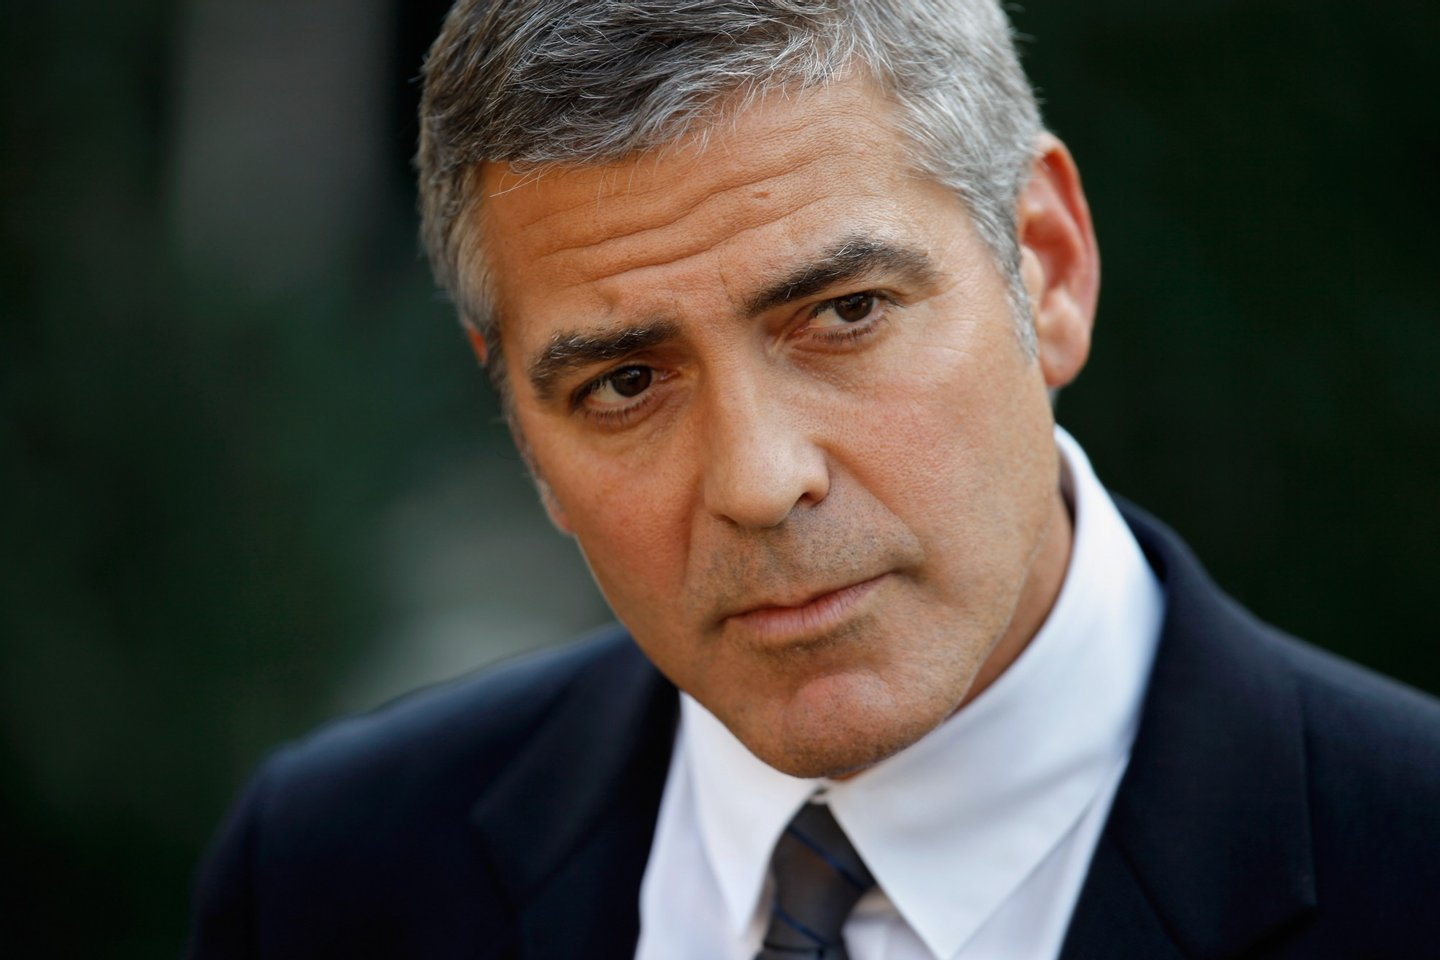 WASHINGTON - OCTOBER 12: Oscar-nominated actor, screen-writer and director George Clooney answers reporters' questions after meeting with U.S. President Barack Obama at the White House October 12, 2010 in Washington, DC. Clooney and human rights activist and co-founder of the Enough Project John Prendergast met with Obama to discuss their recent trip to Sudan and the threat there of a war ahead of a referendum election. (Photo by Chip Somodevilla/Getty Images)